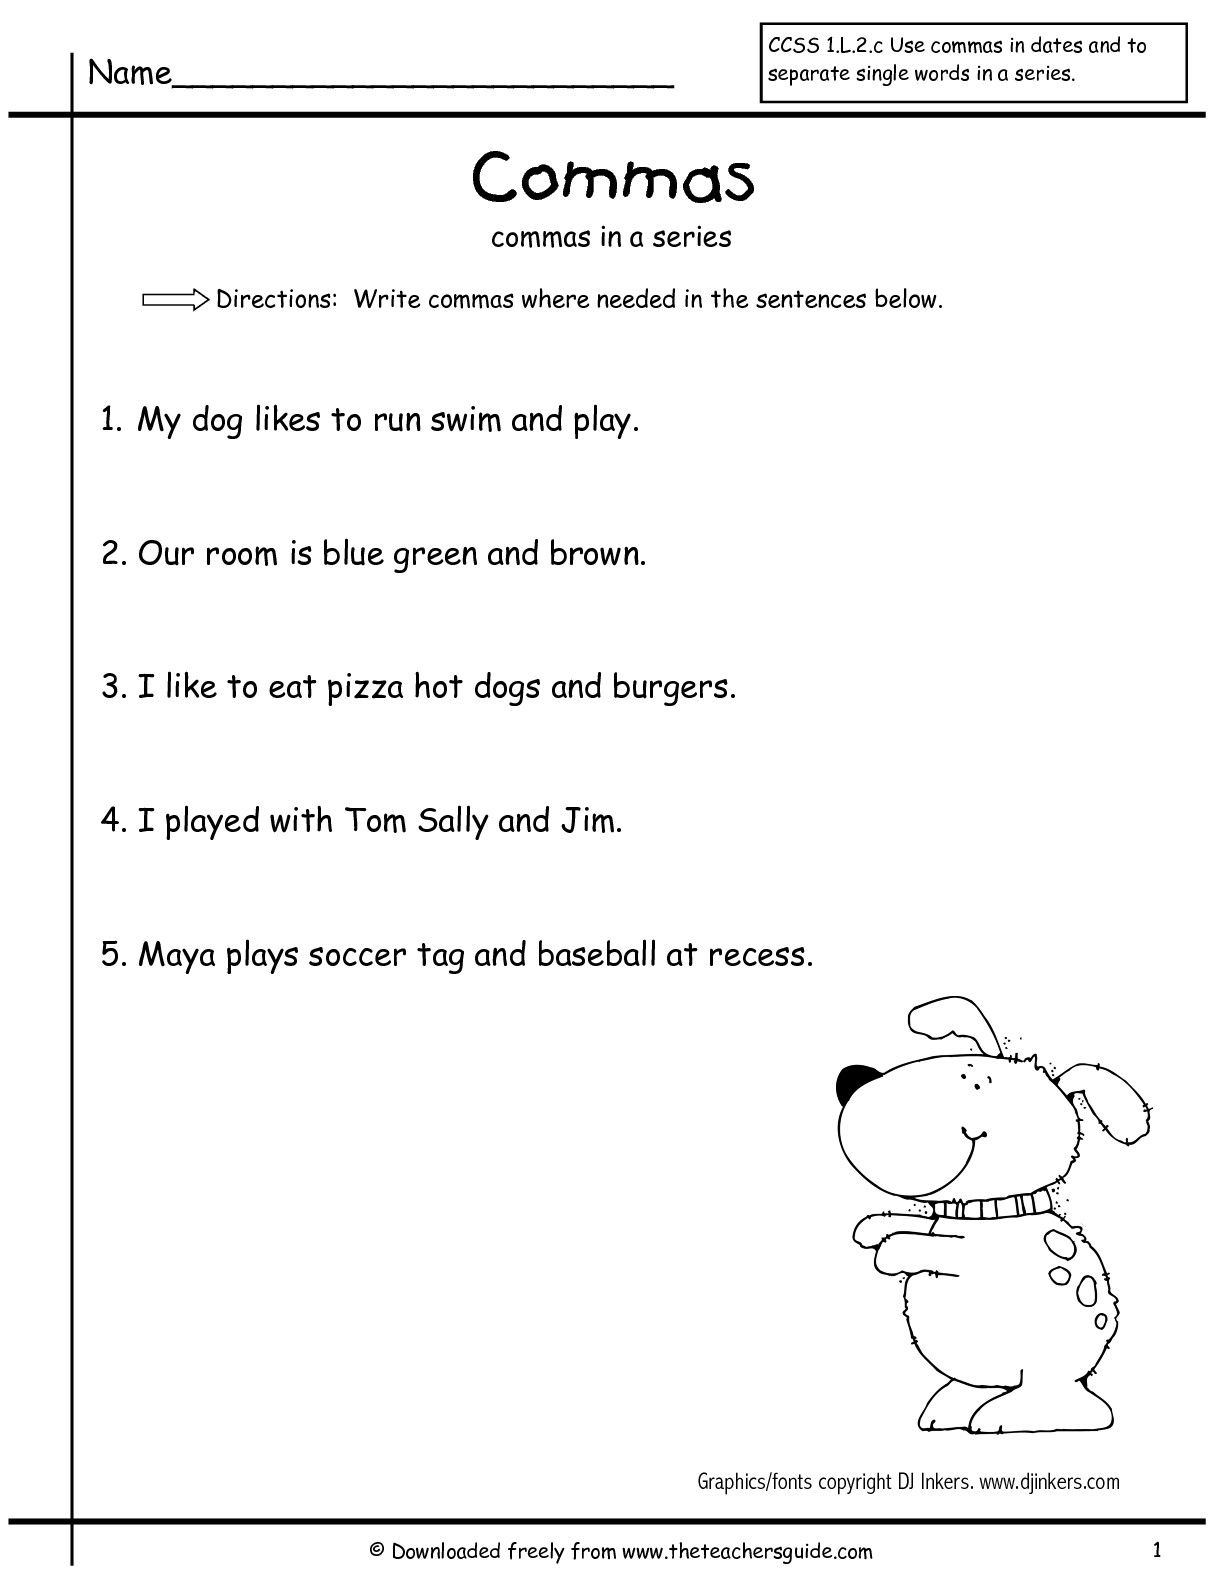 commas in a series | Grammar | Pinterest | Worksheets